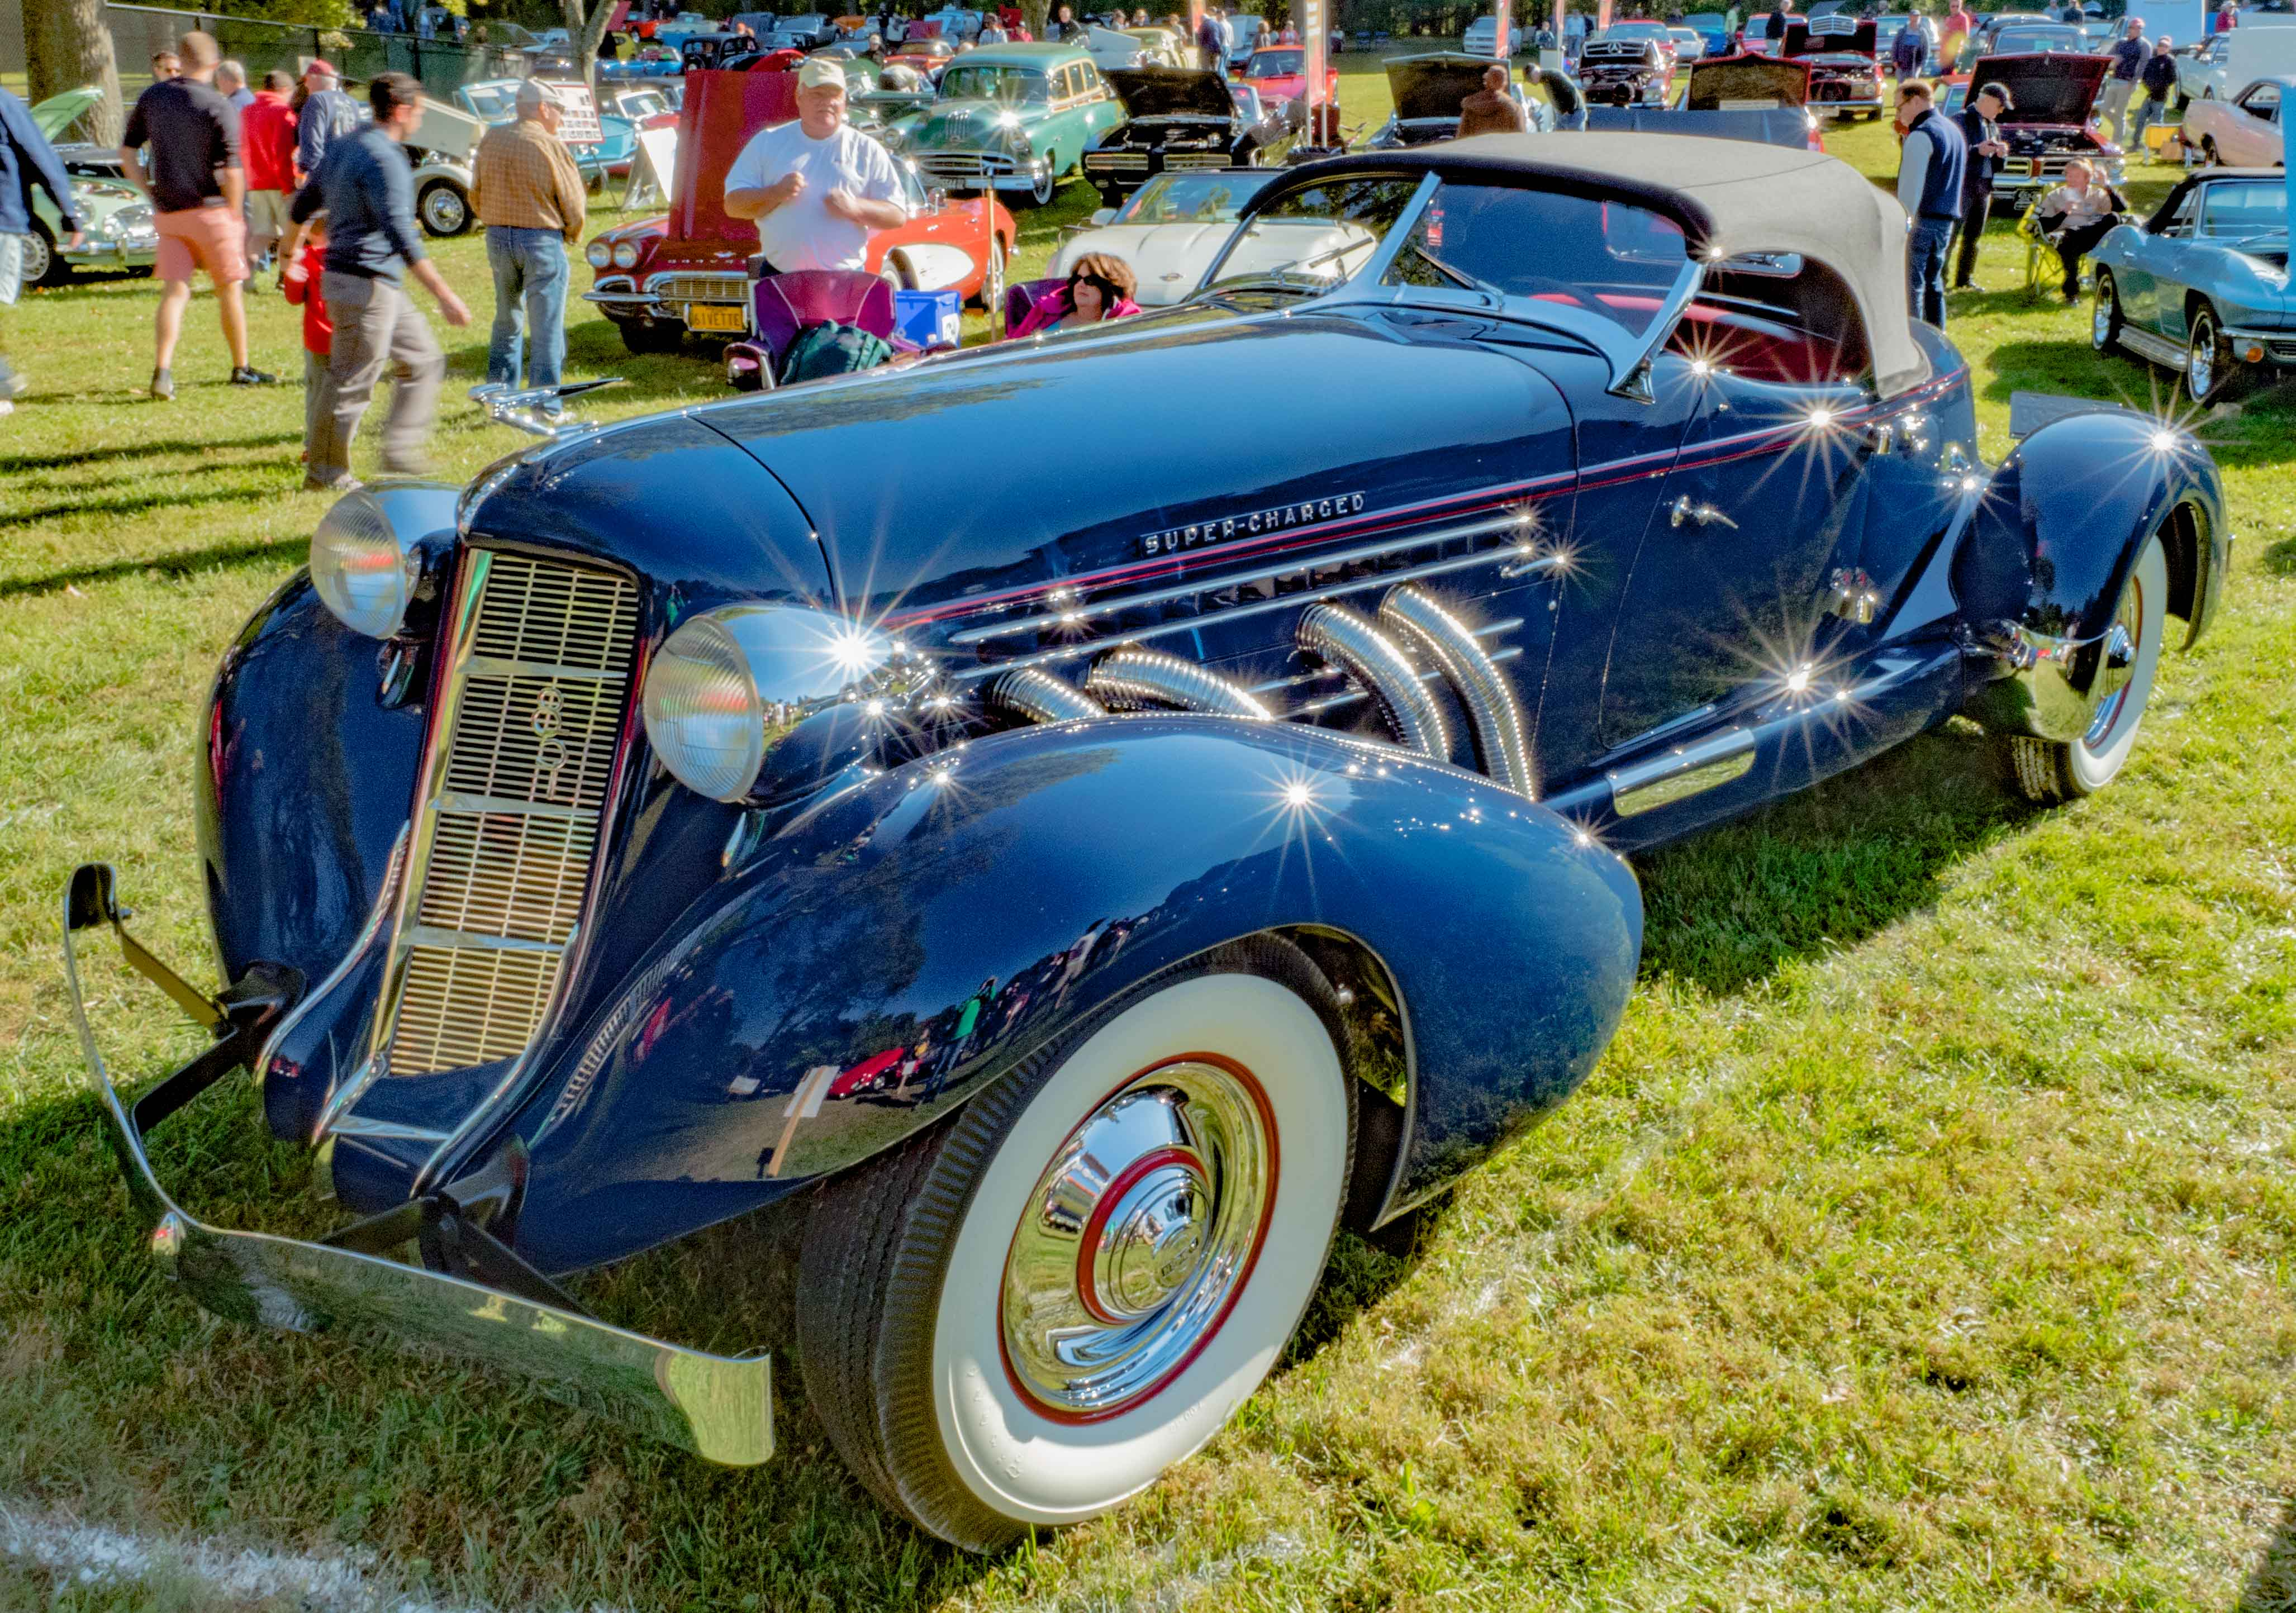 October Field Trip To Rockville Antique And Classic Car Show - Antique and classic car show